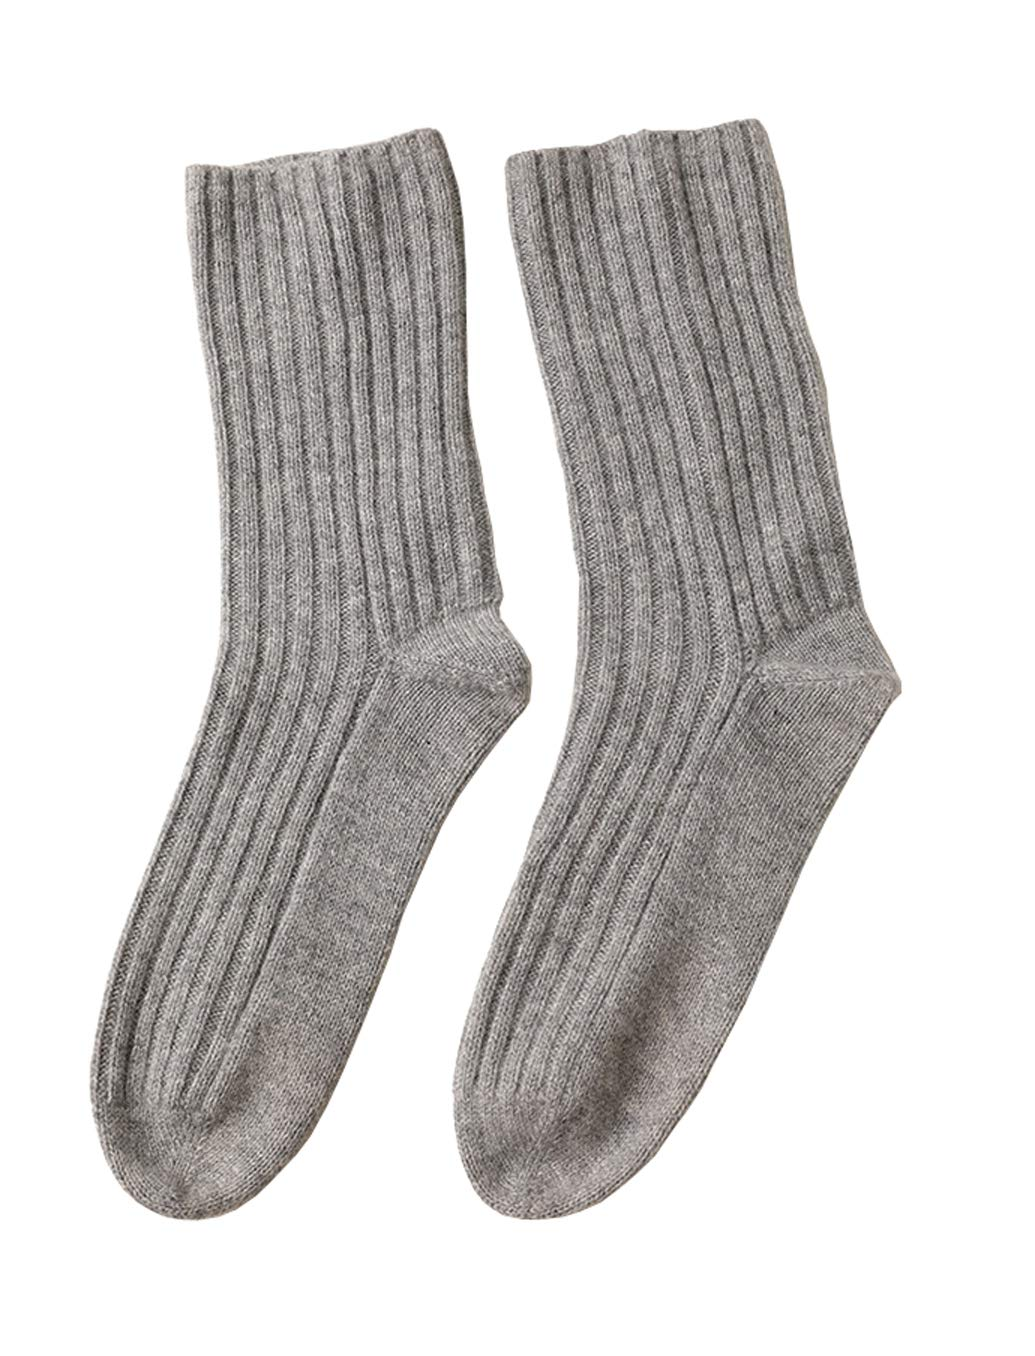 Three Cashmere Ladies 100% Cashmere Socks Pure Cashmere Socks for Women Soft Skin-Friendly Home Winter Warm Natural Fiber Cashmere 1 Pairs by Gongxue